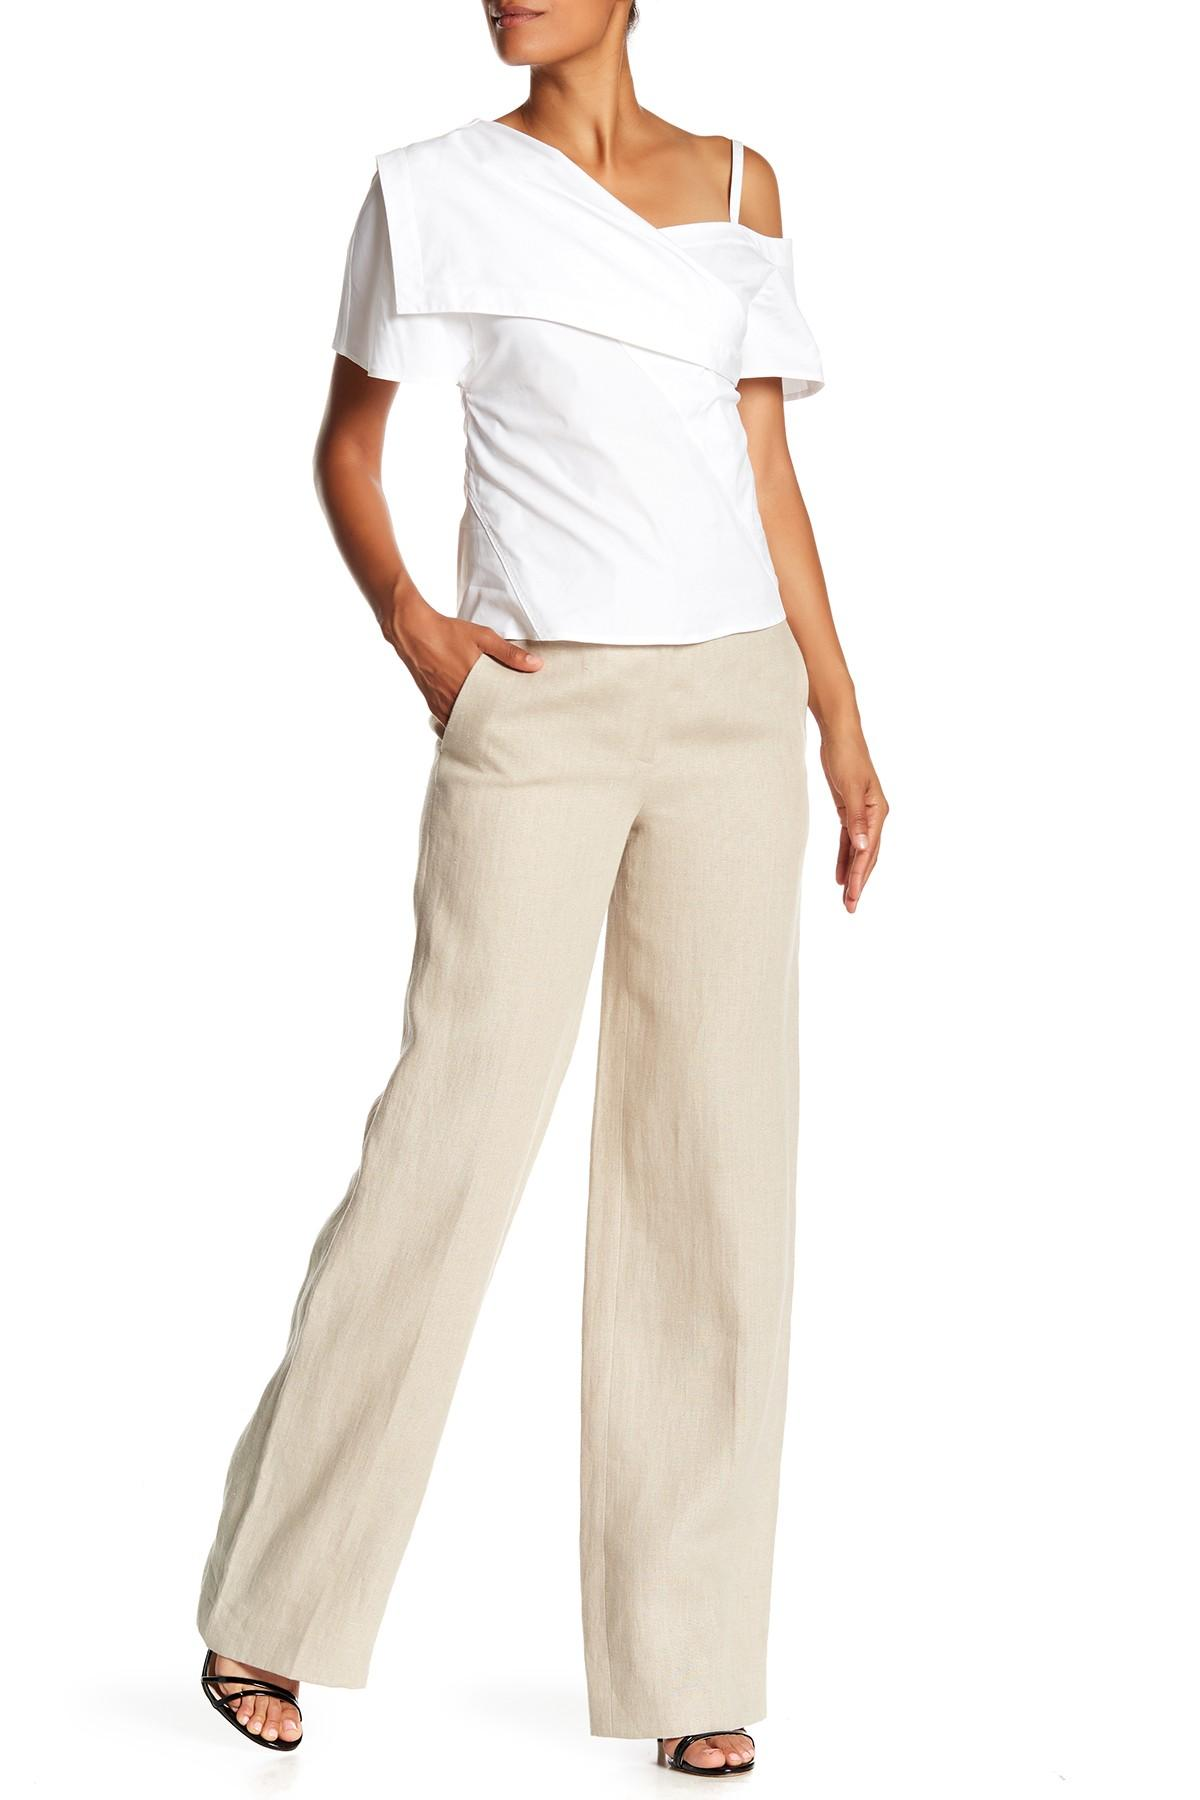 6aa2ef0d7c2 Lyst - Theory Piazza Integrate Wide Leg Linen Pants in Natural